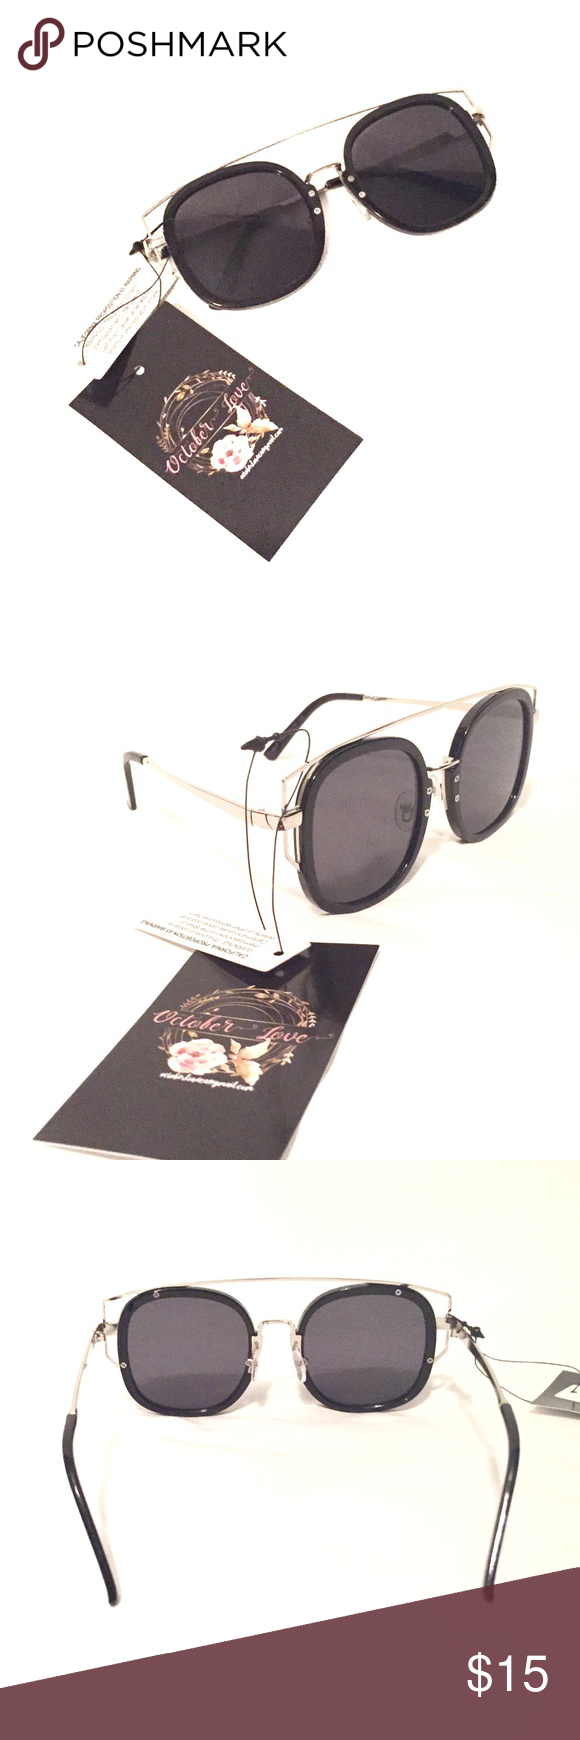 831e781de8 Black   Silver NWT Hipster Wide Frame Sunglasses NWT October Love boutique  brand. Black lens with silver accents. Bar over top of the lens as shown in  ...